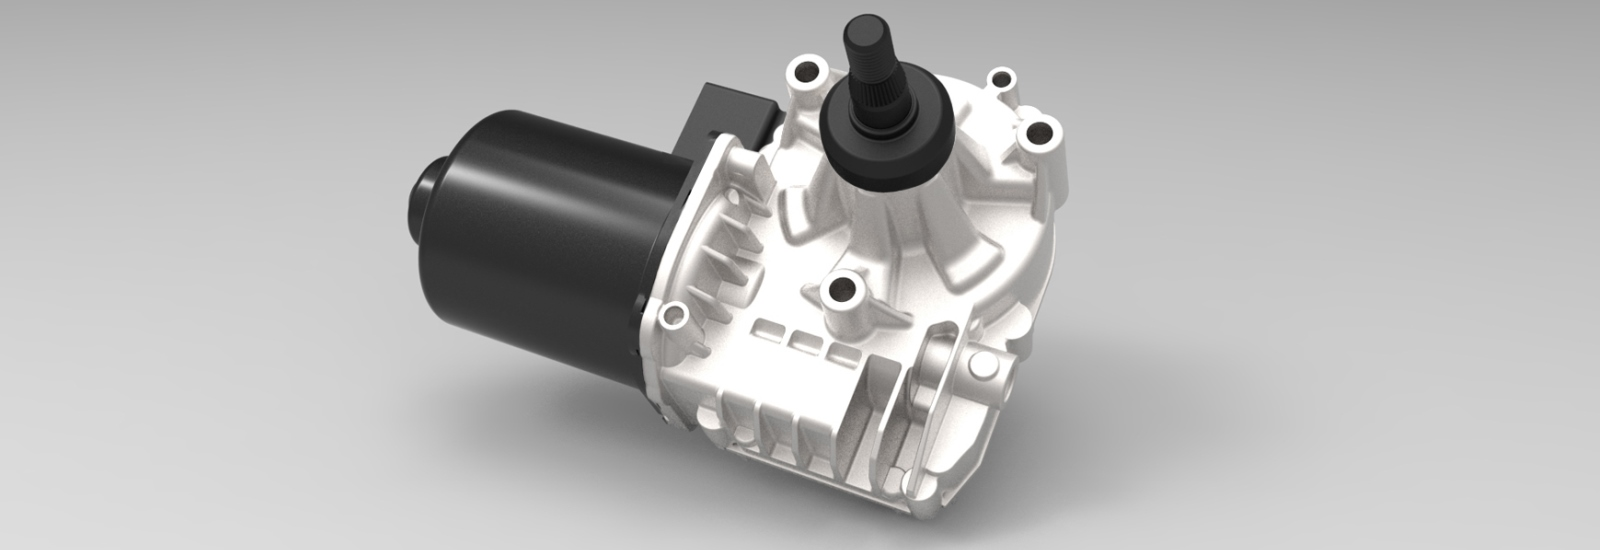 Dual Direct Drive Motors Light And Efficient Wiper System